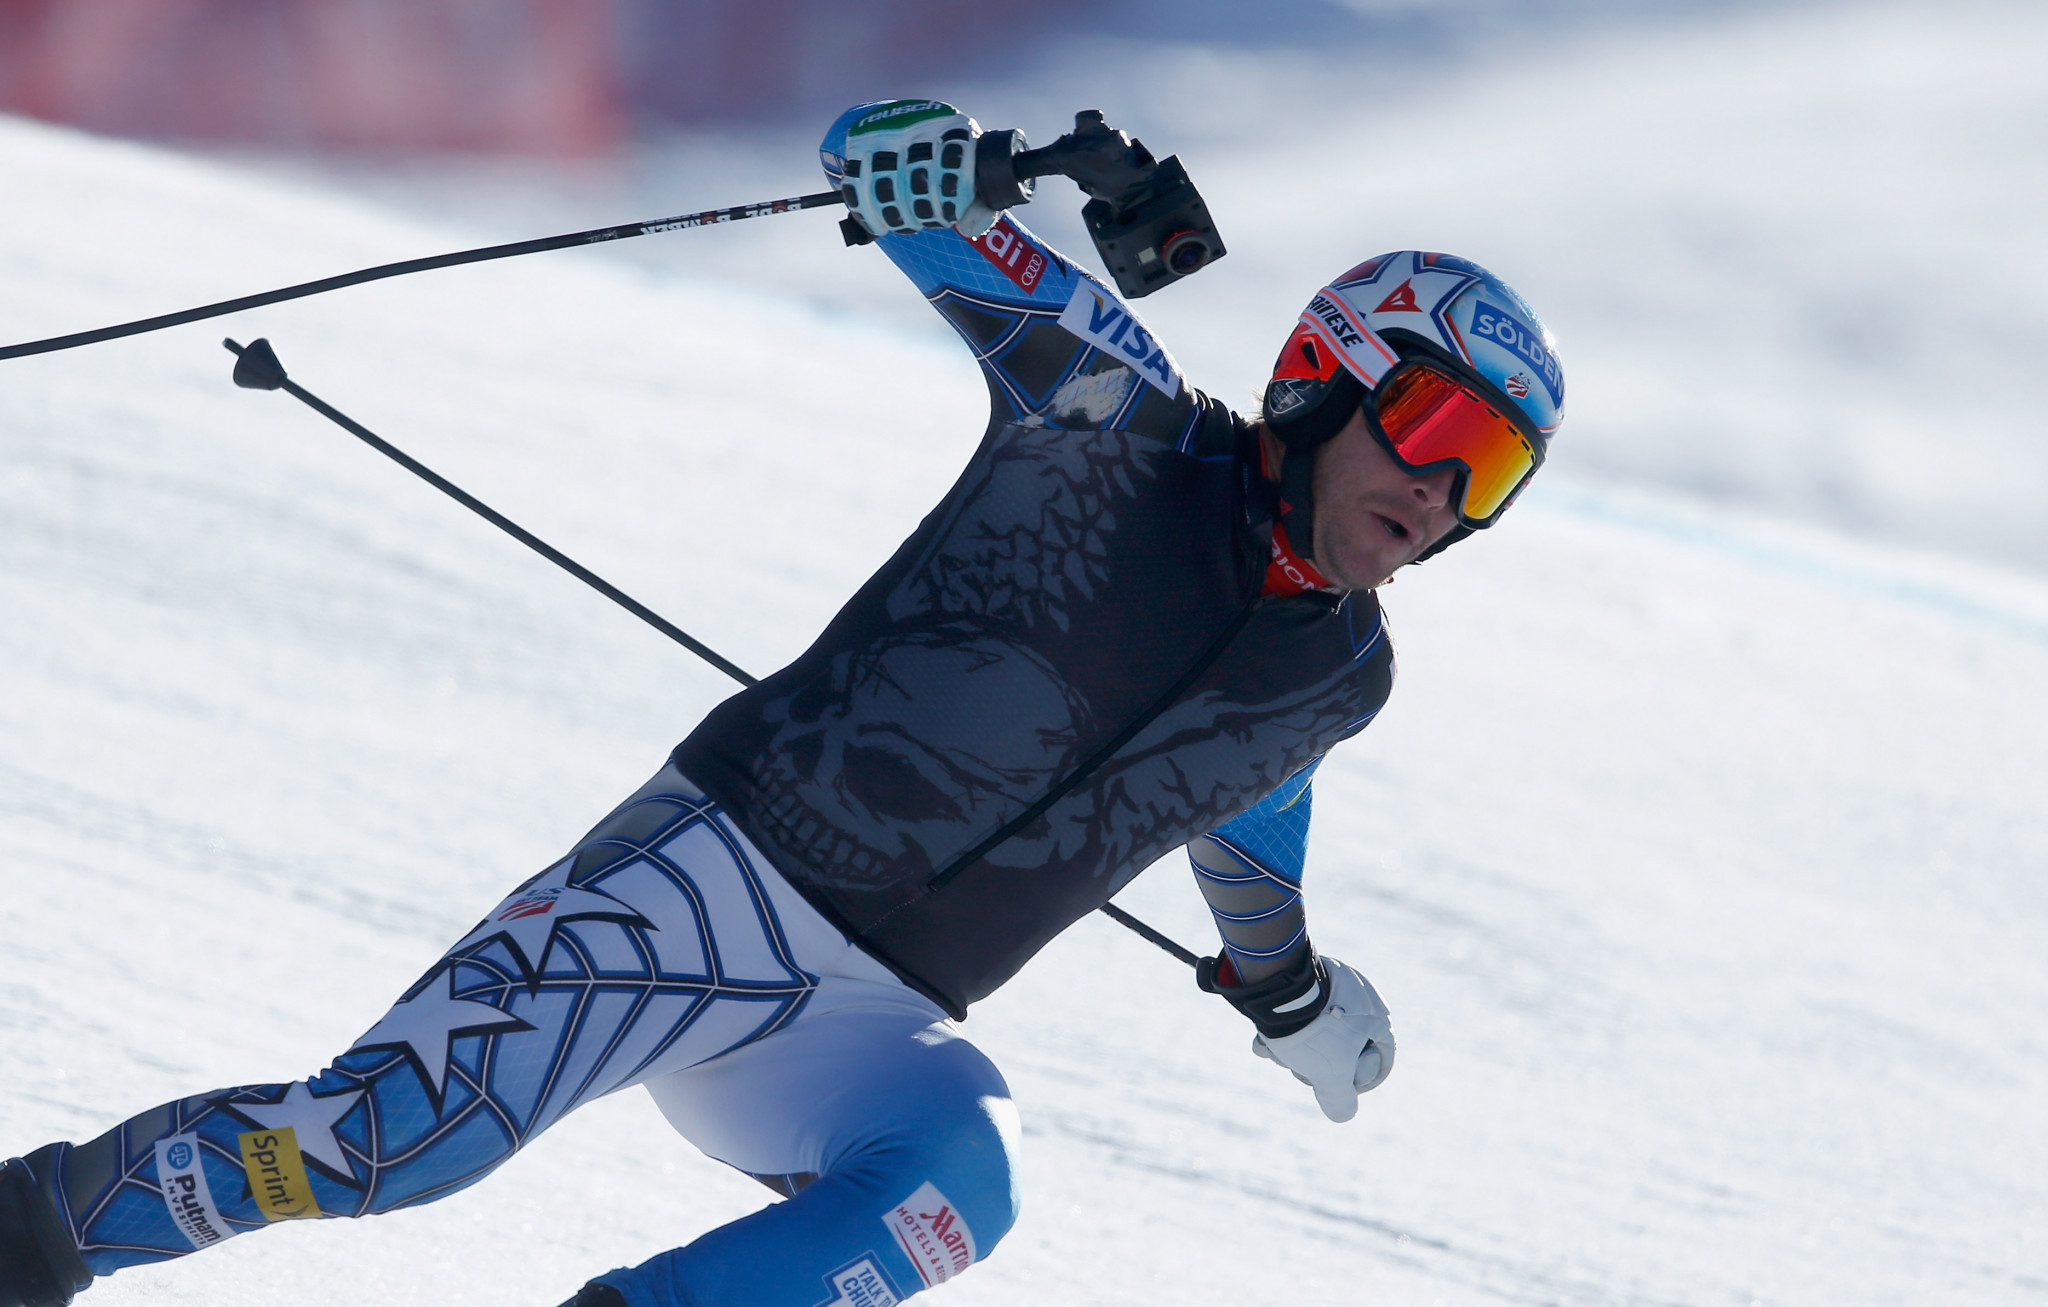 Miller among eight new inductees into US Ski and Snowboard Hall of Fame